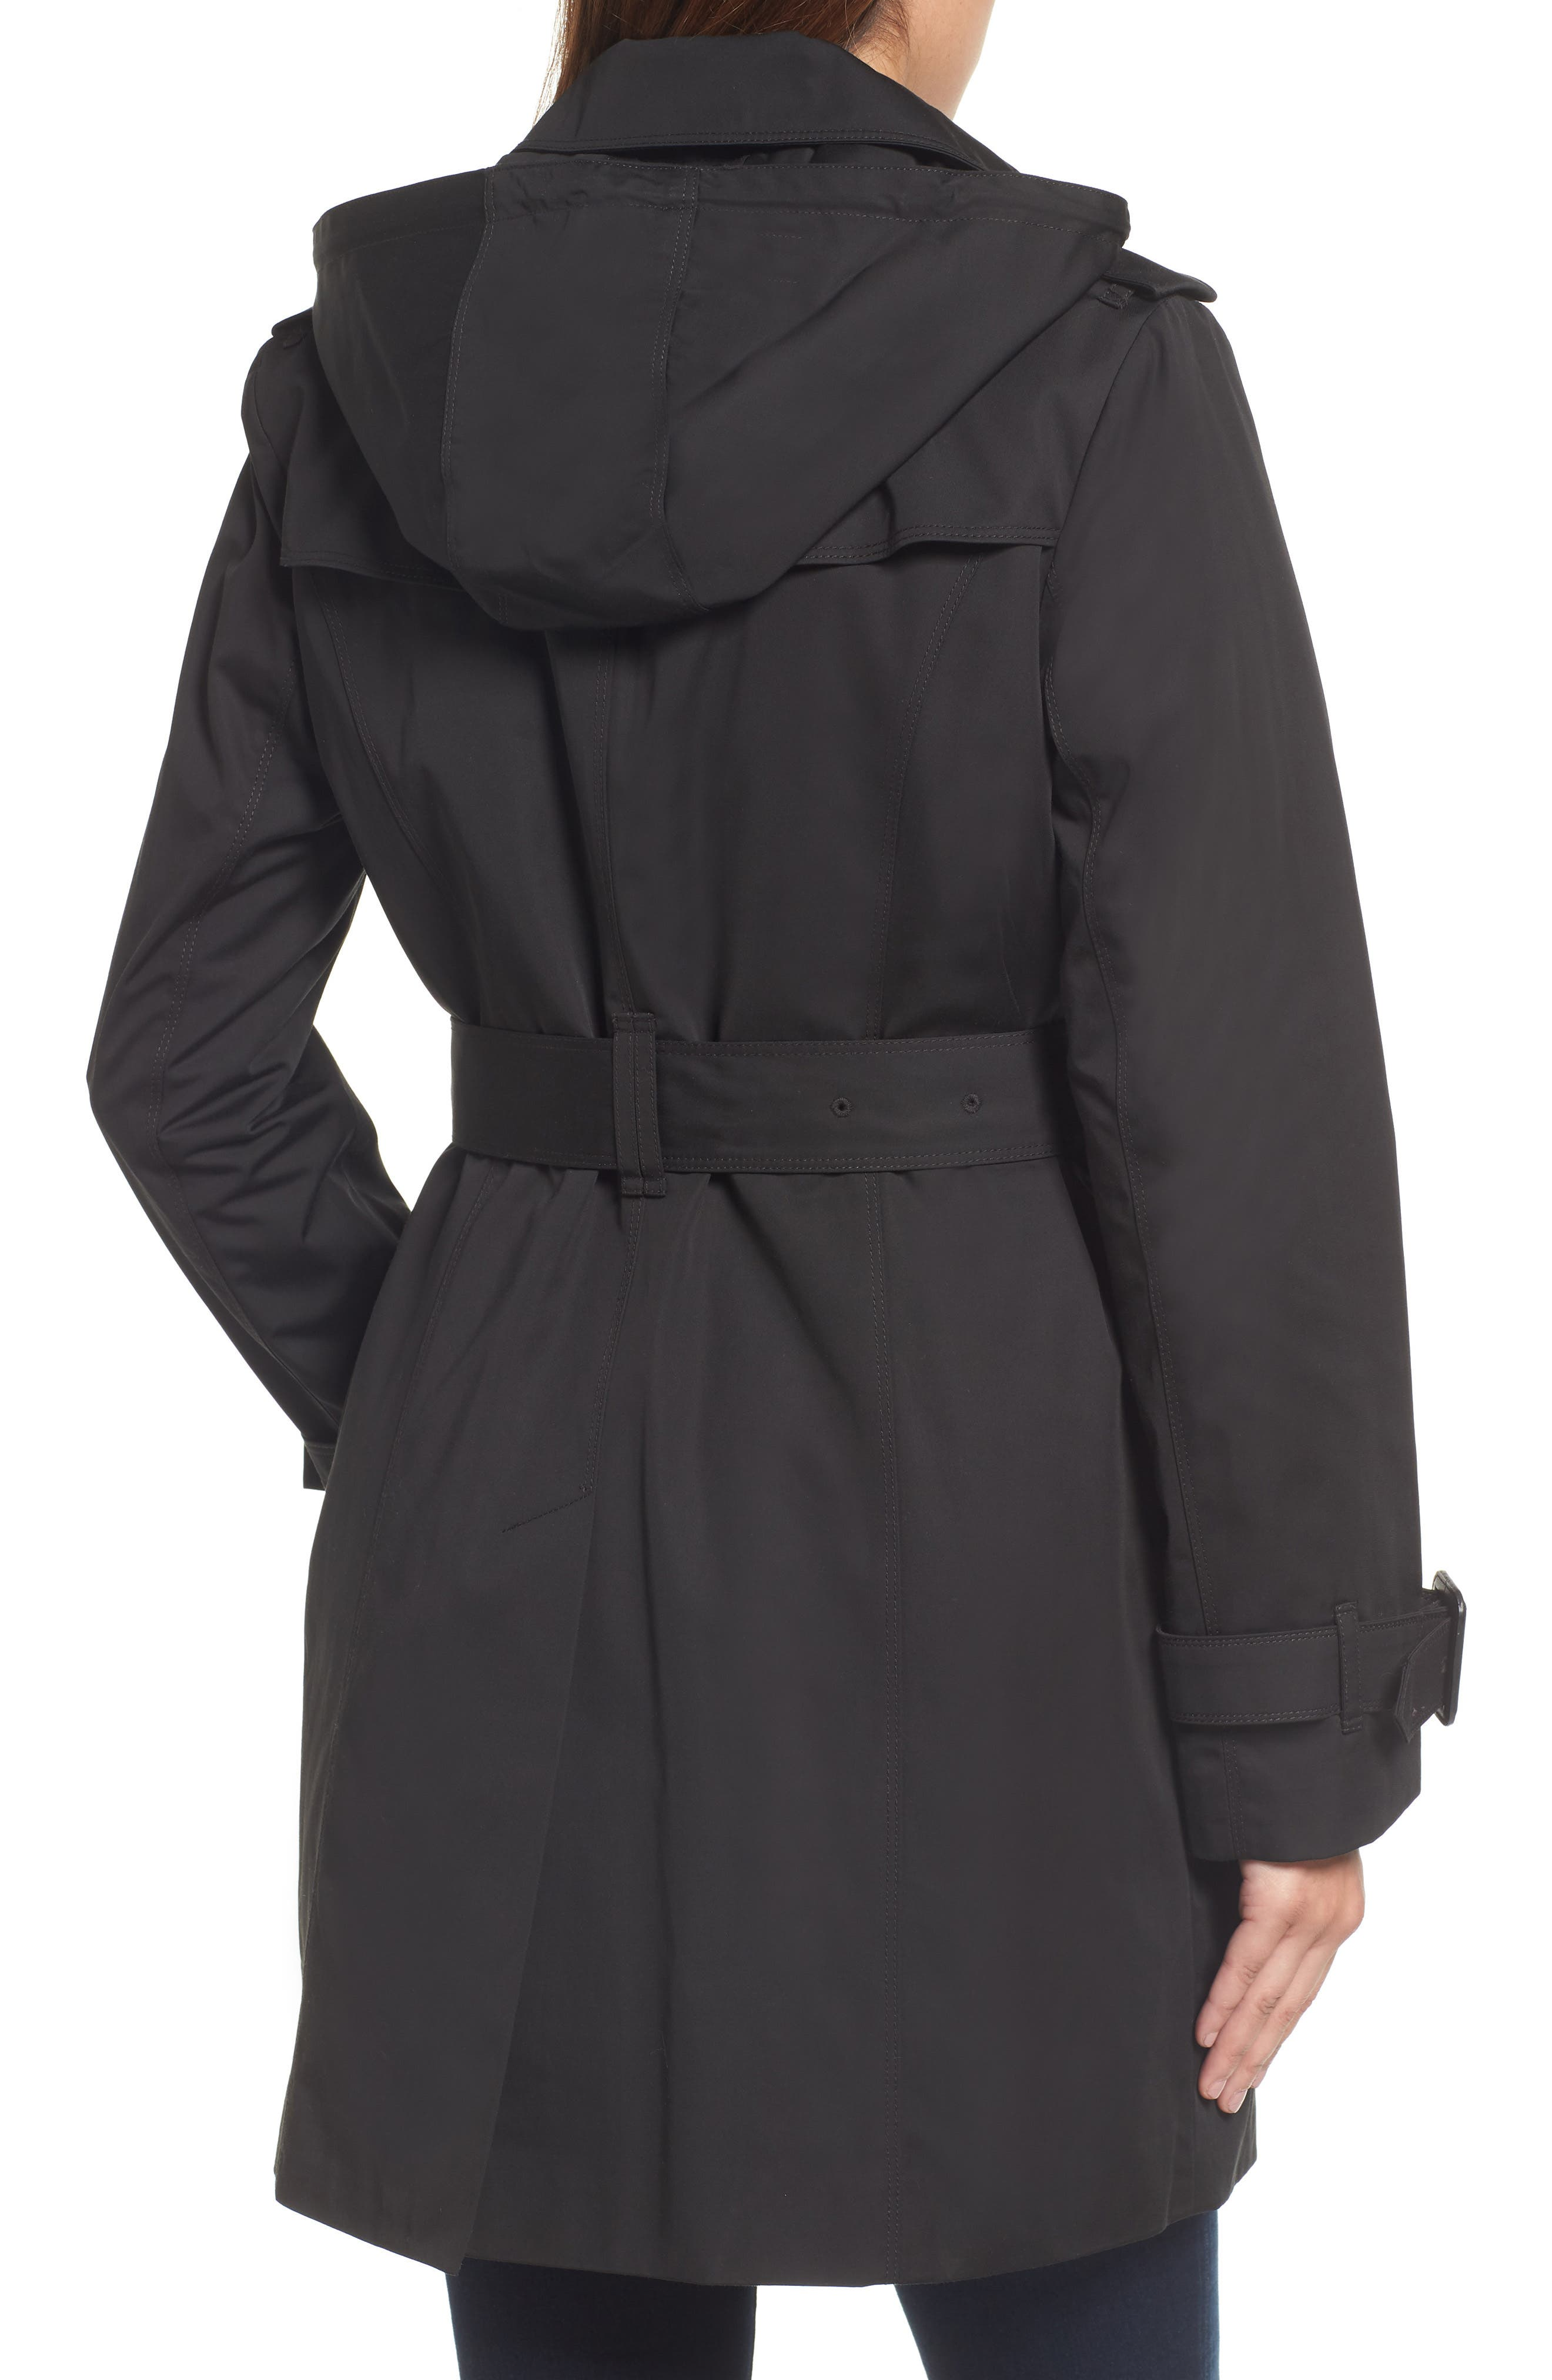 Heritage Trench Coat with Detachable Liner,                             Alternate thumbnail 2, color,                             001